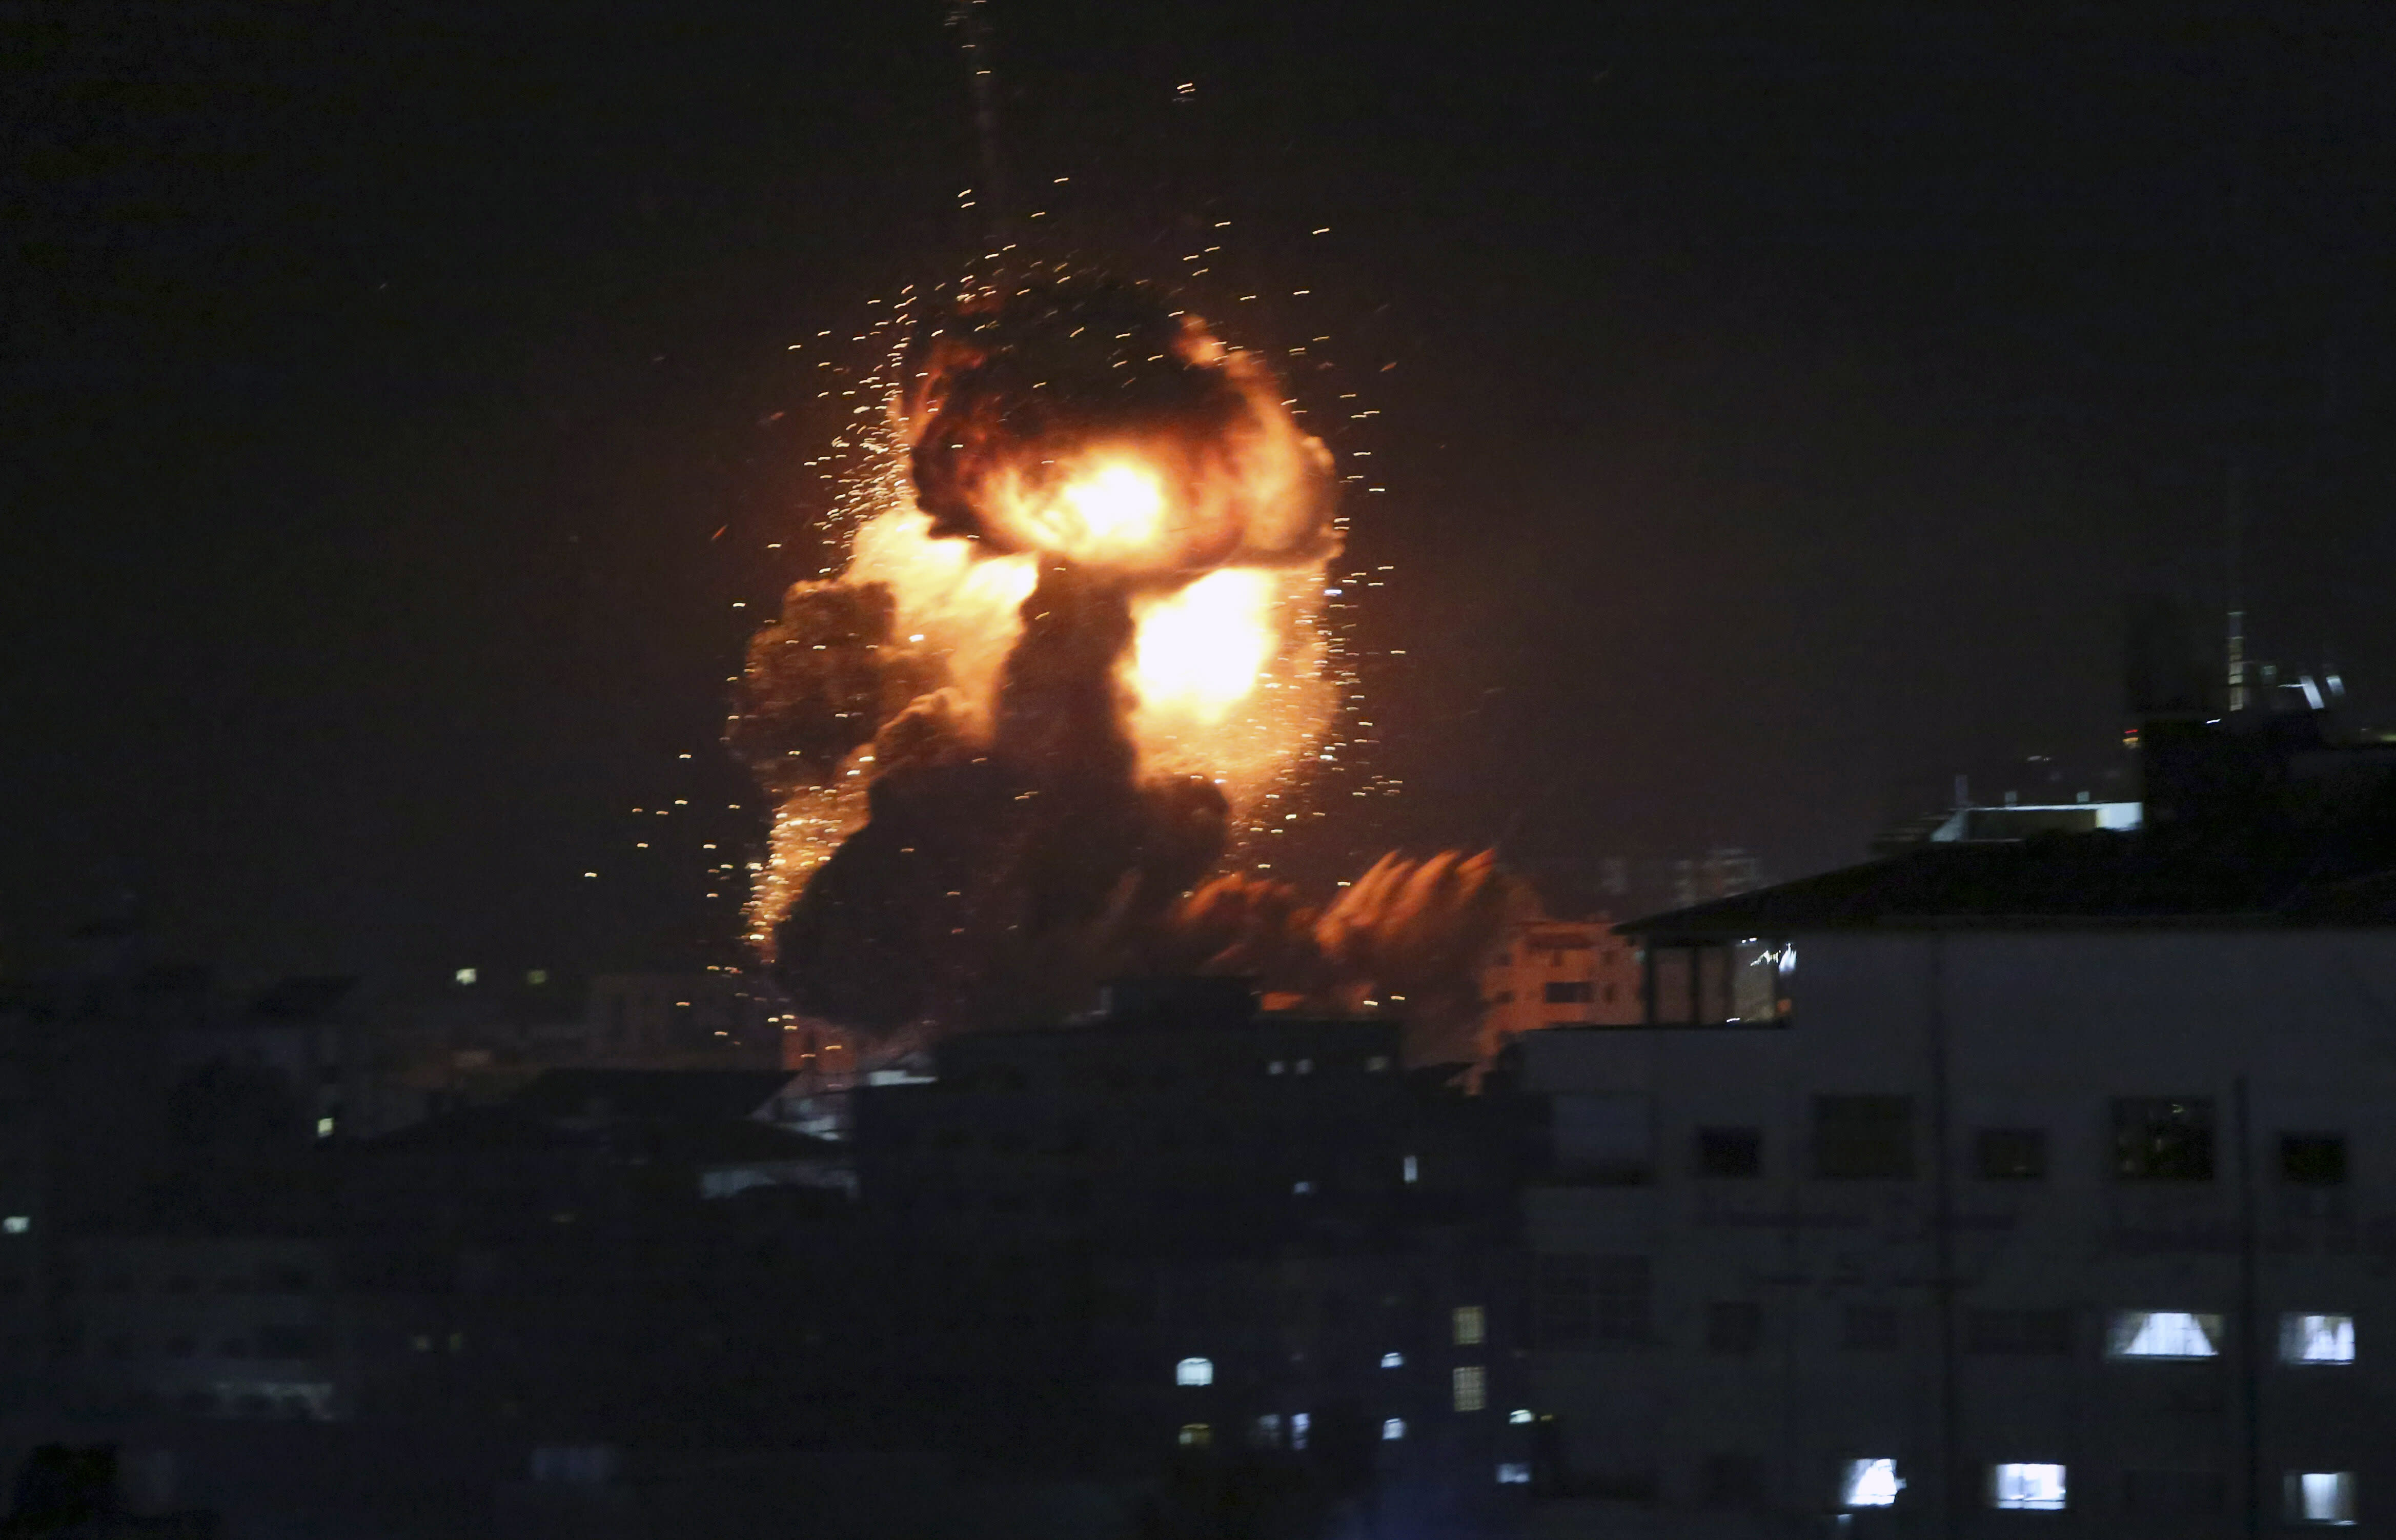 FILE - In this Monday, March 25, 2019 file photo, an explosion caused by Israeli airstrikes is seen in Gaza City. Hamas controls Gaza more tightly than ever, despite unprecedented domestic unrest and its failure to significantly weaken Israel's chokehold of the territory after a year of weekly anti-blockade rallies along their shared frontier. (AP Photo/Adel Hana, File)